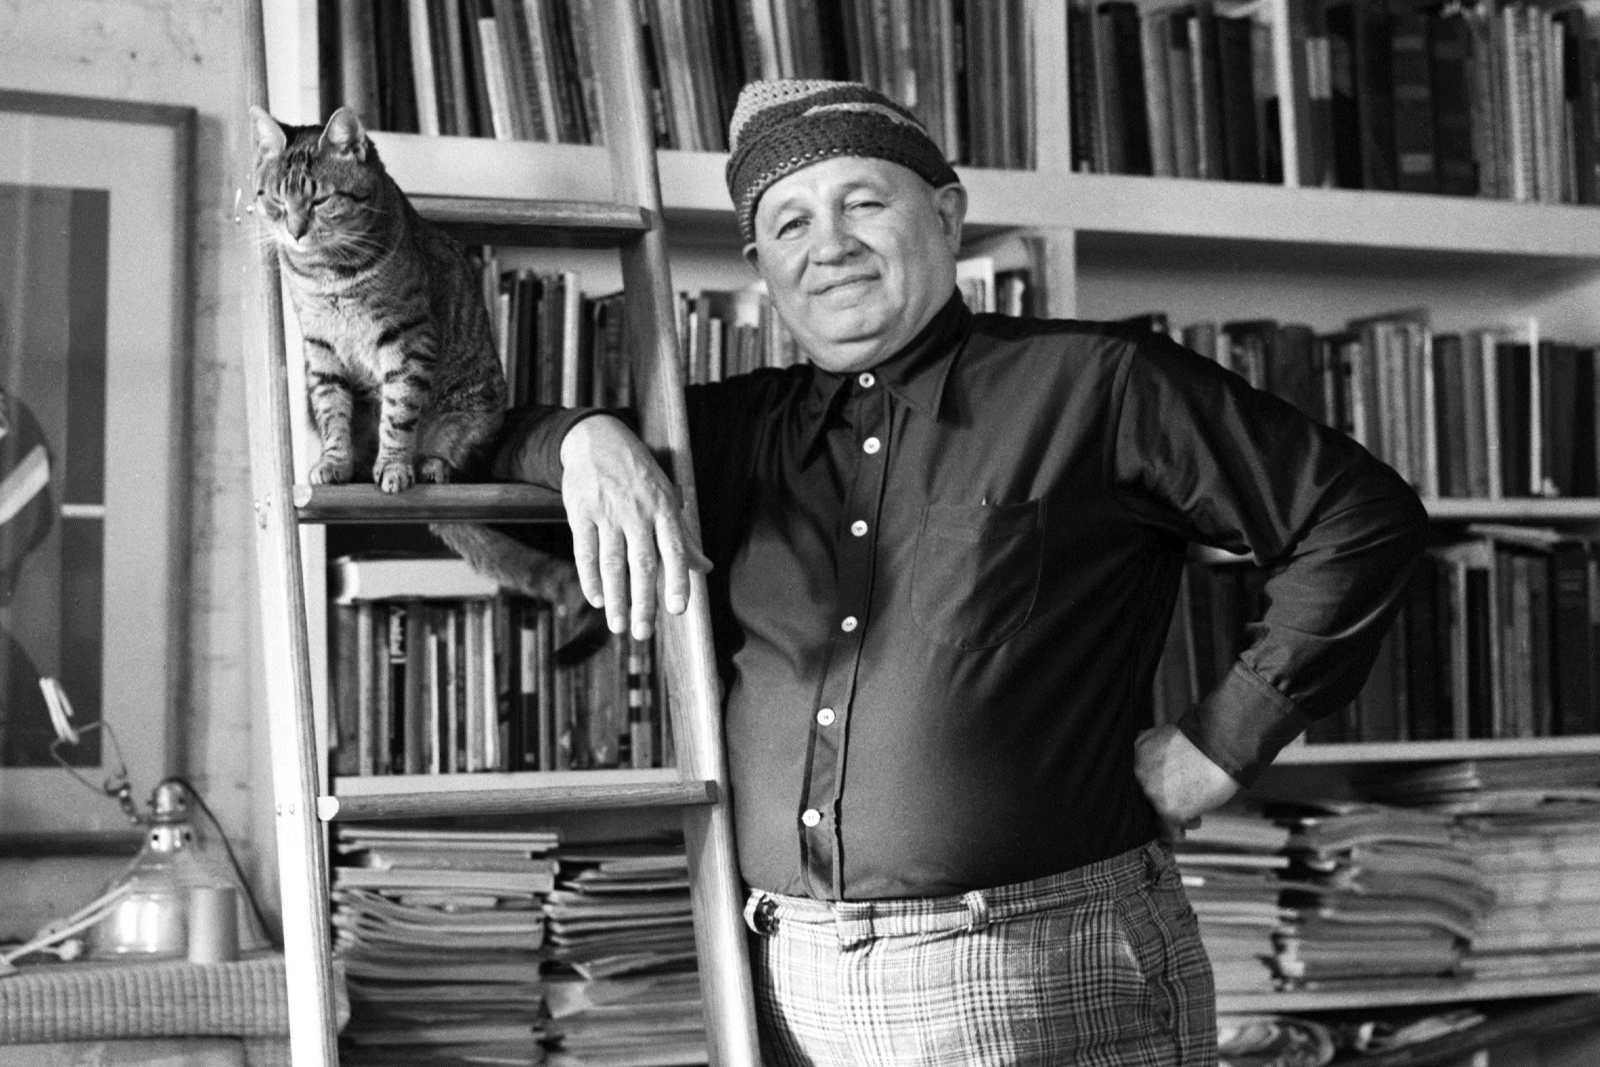 Romare Bearden portrait. Photo by Blaine Waller: Bearden stands in front of a wall of books resting on a ladder which also holds a cat. 1976